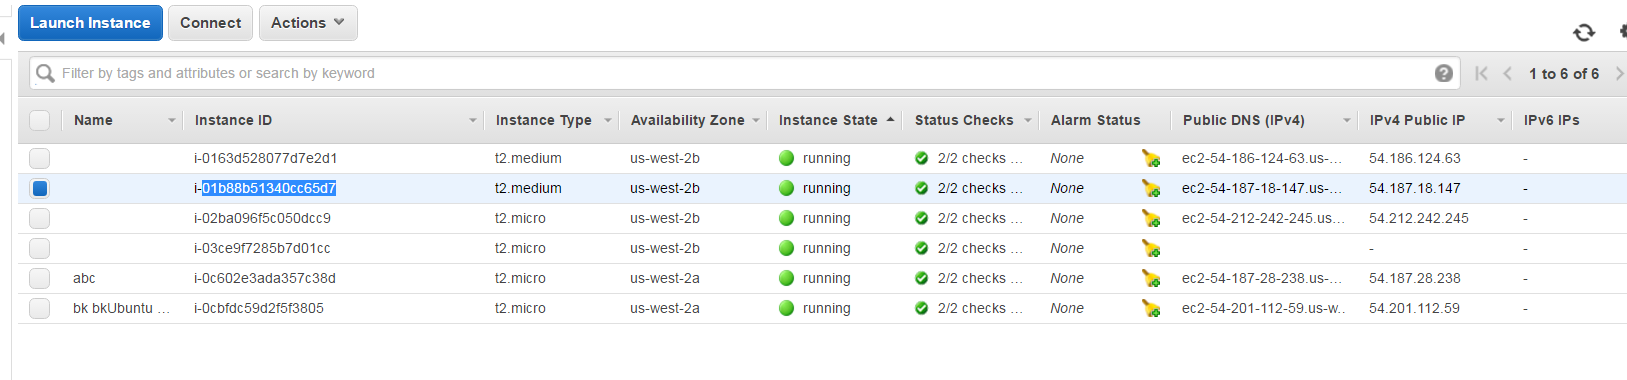 Running instances of AWS